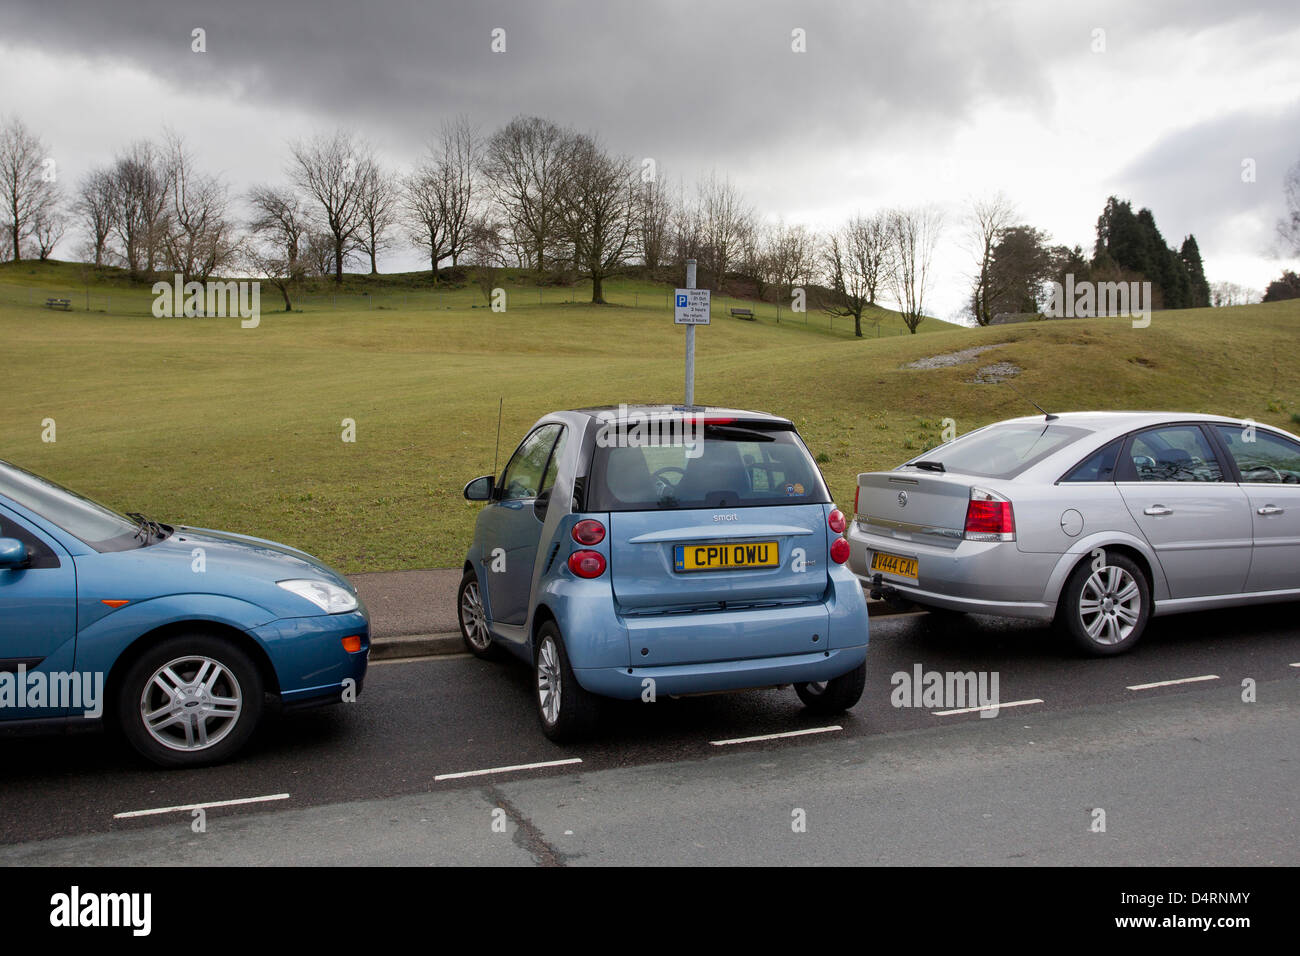 Smart Car Perpendicular Parking